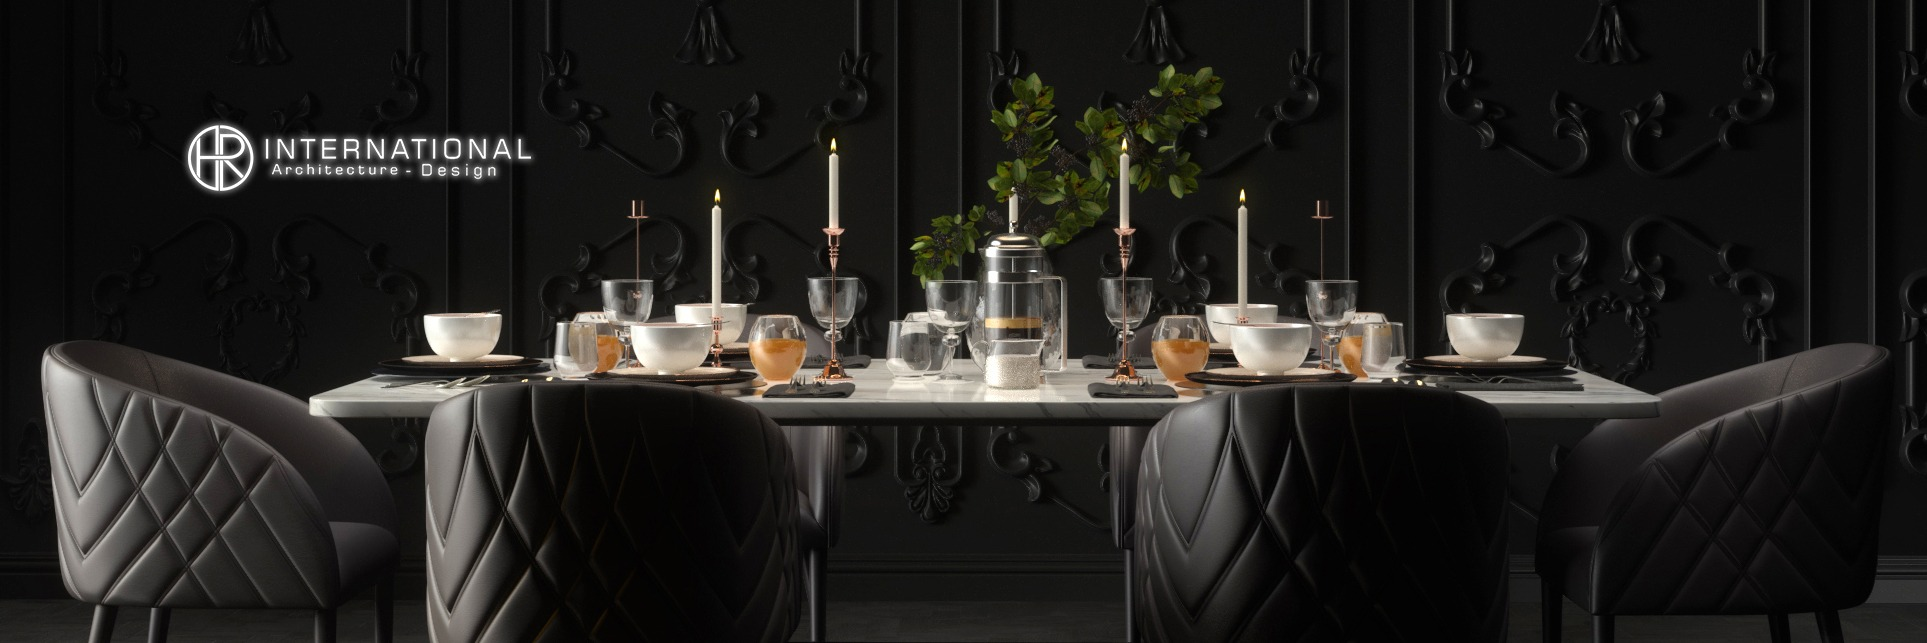 Interior Design Dinning Room Black Mood